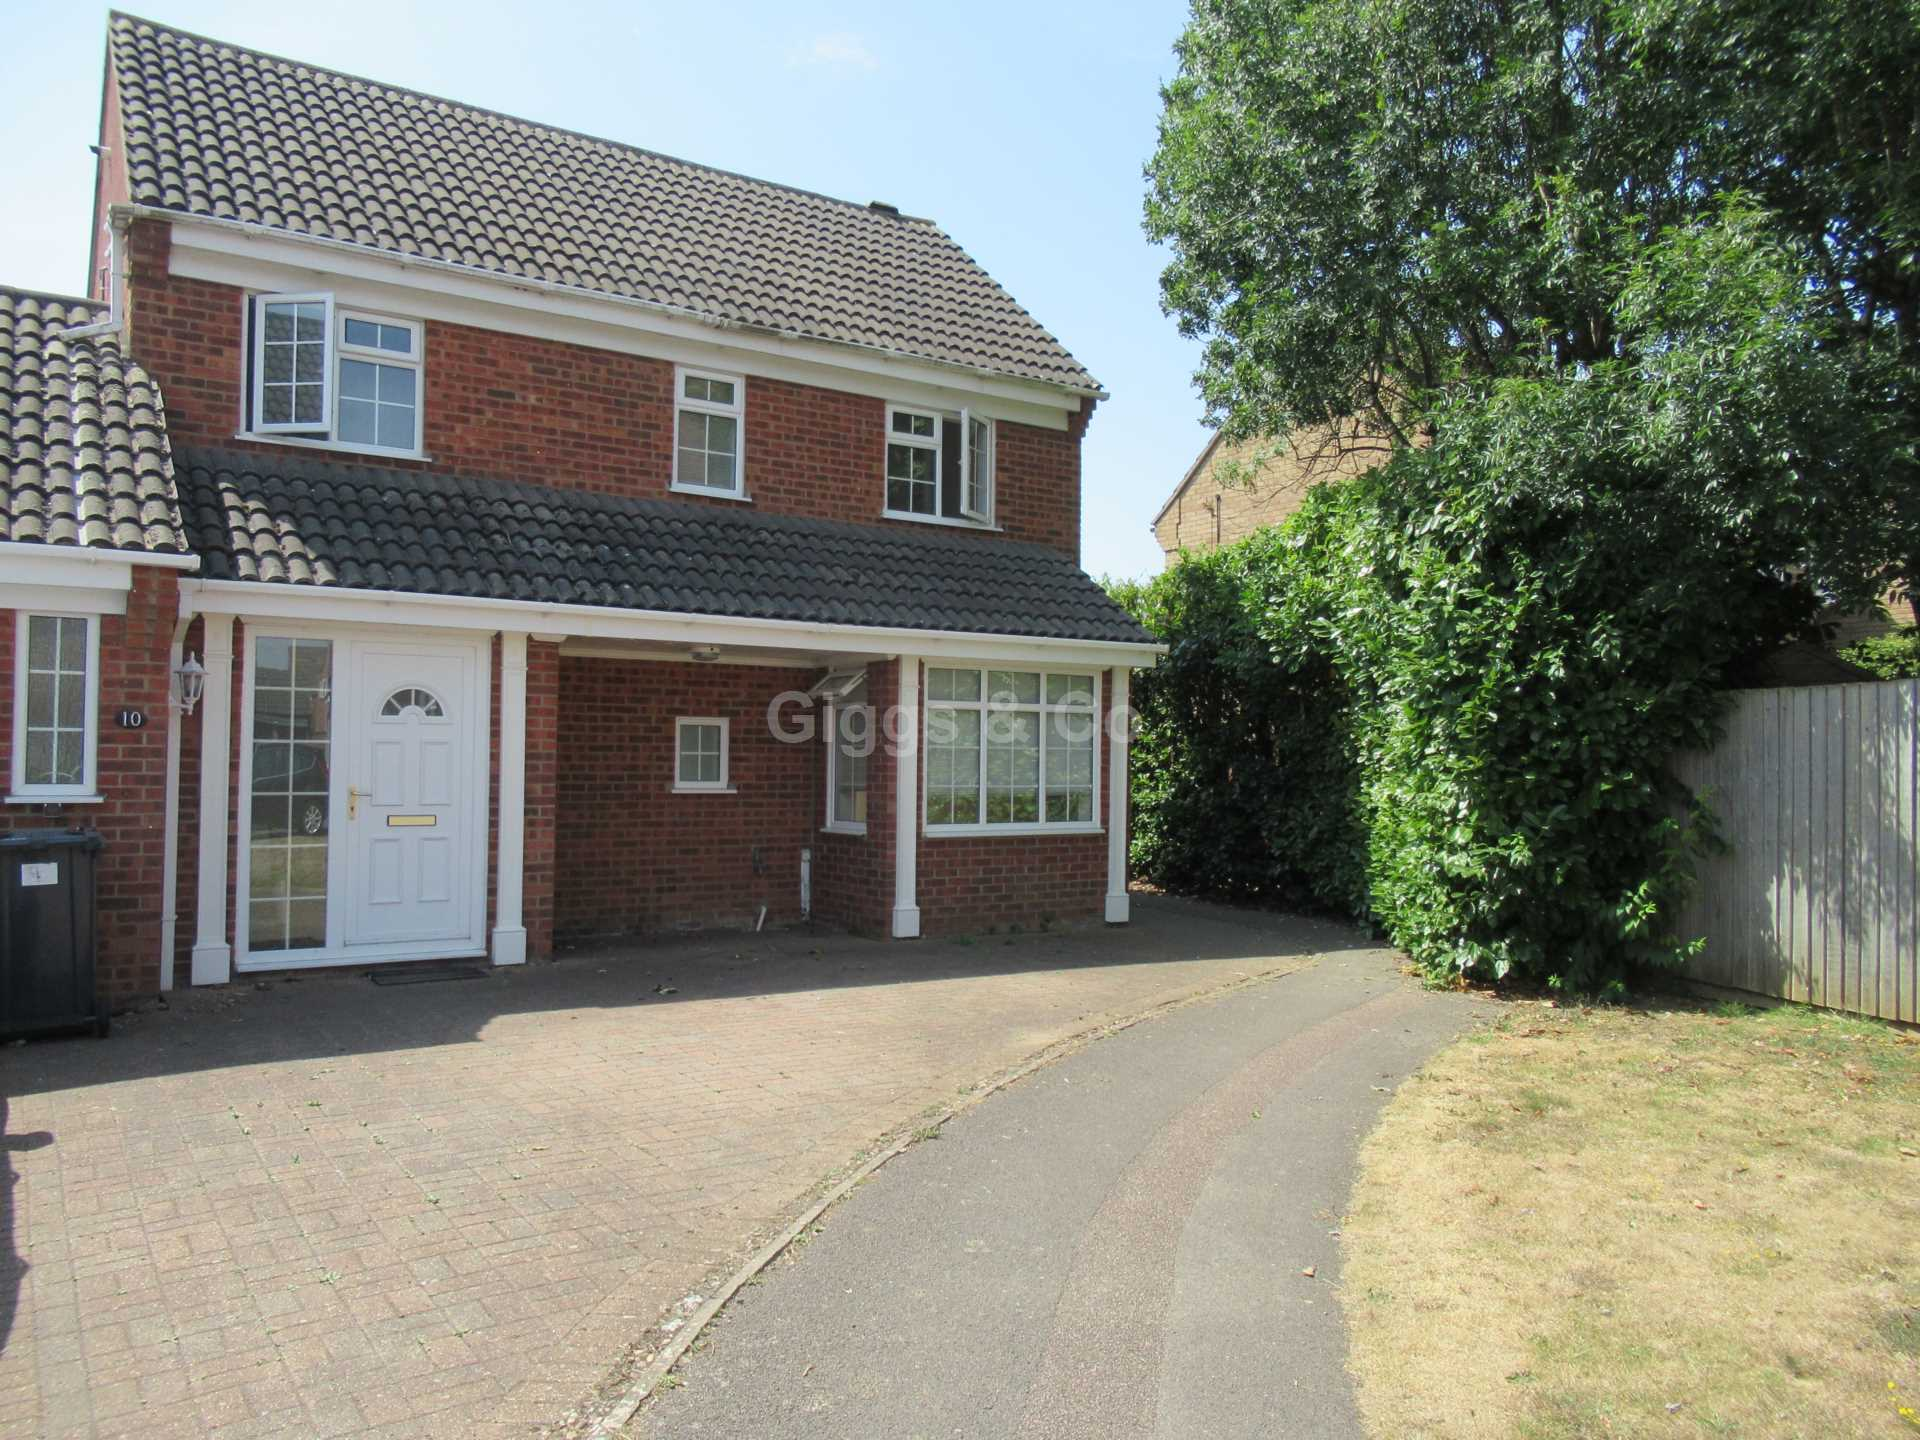 3 bed detached house to rent in Gazelle Close, Eaton Socon, PE19